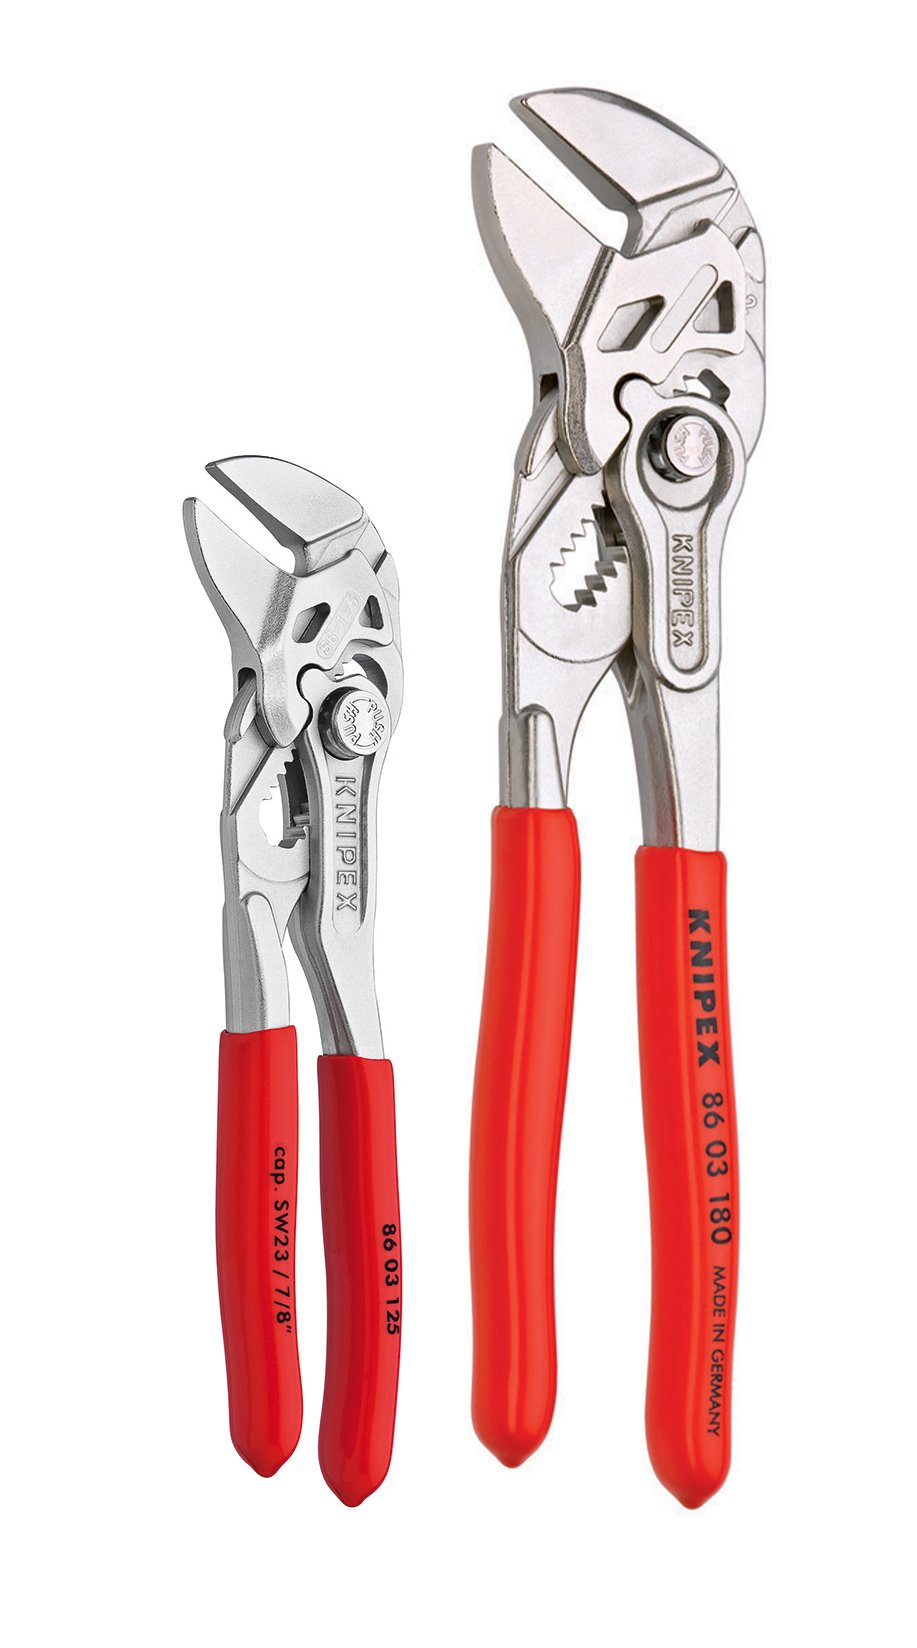 KNIPEX Tools 9K 00 80 121 US Small Pliers Wrench Tool Set (2 Piece)